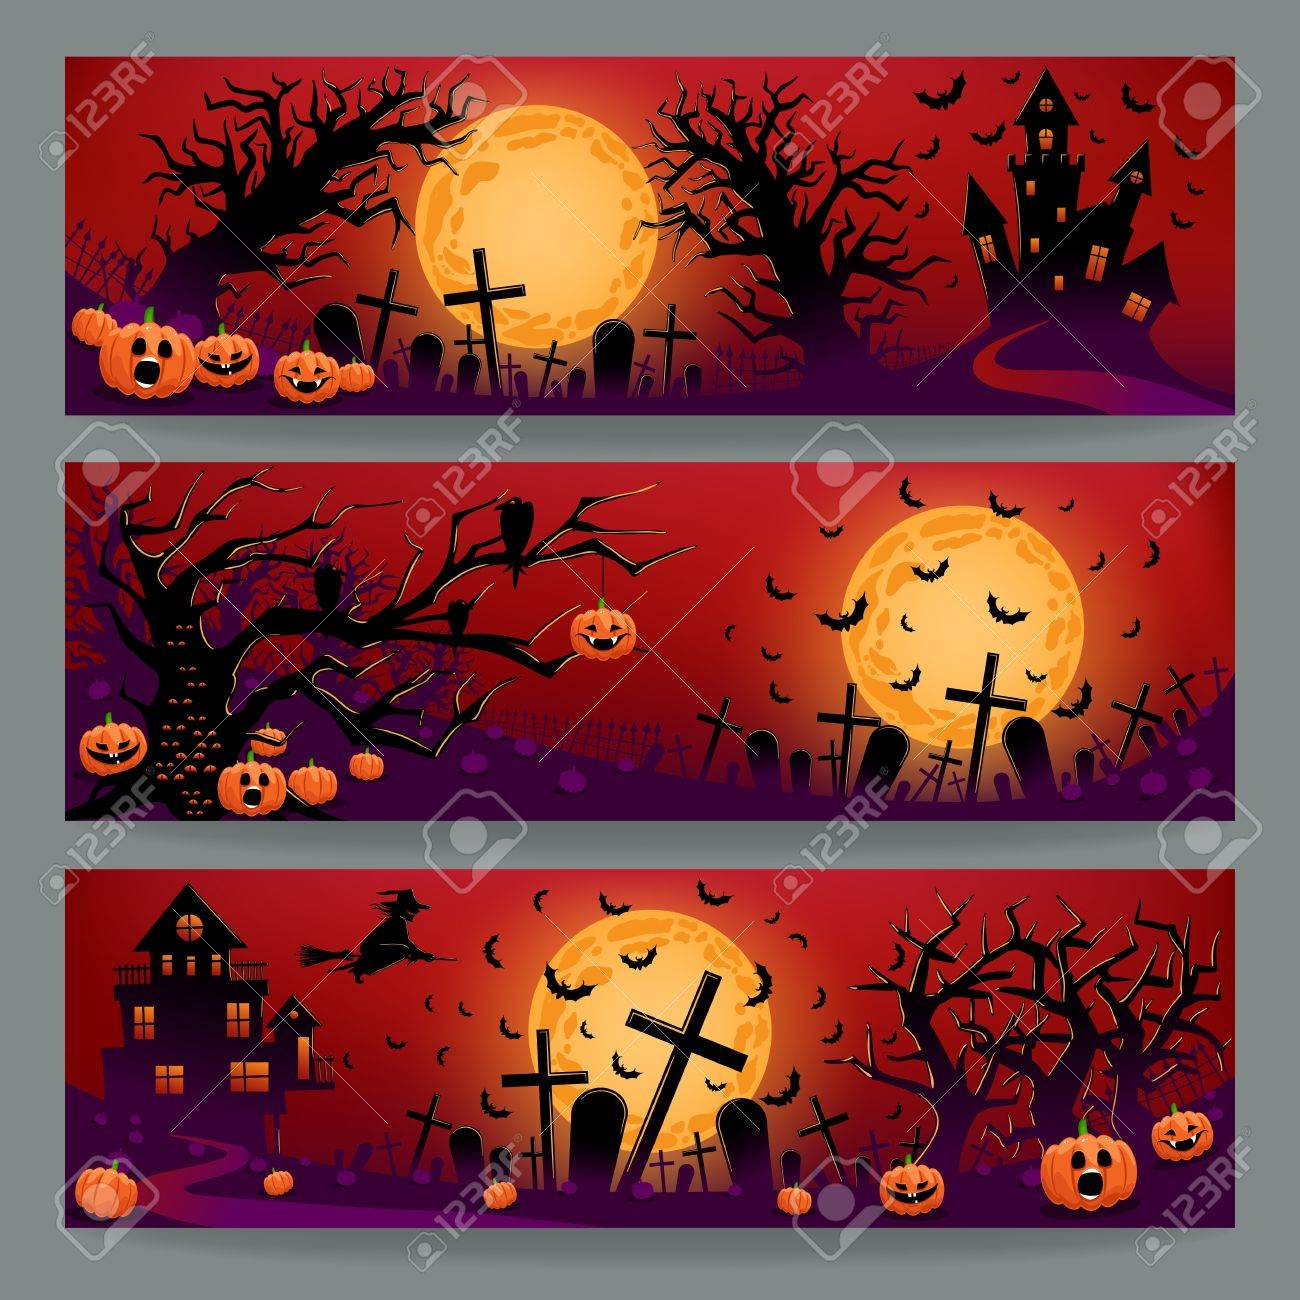 Set of three beautiful banners for Halloween with graves, evil pumpkins and trees - 22174093